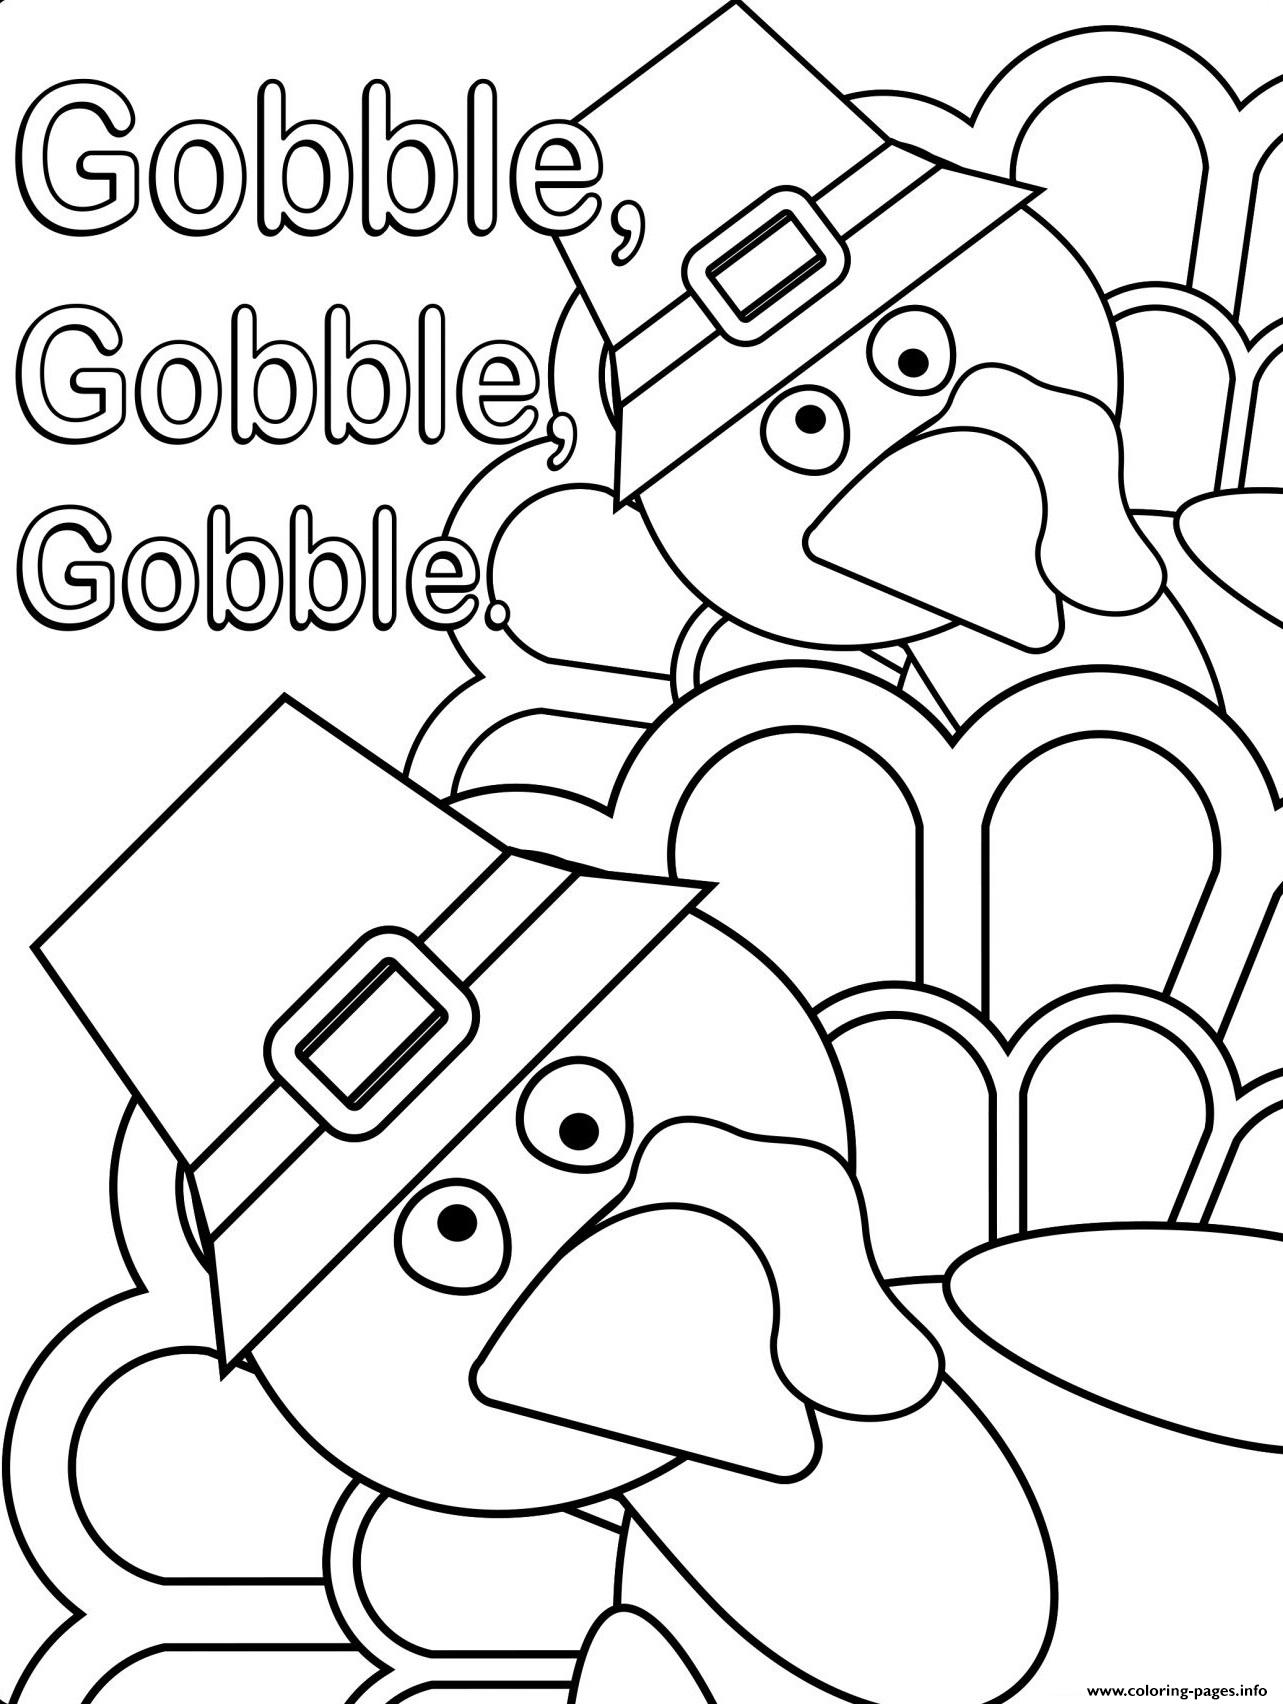 Thanksgiving Turkey Gobble Gobble coloring pages